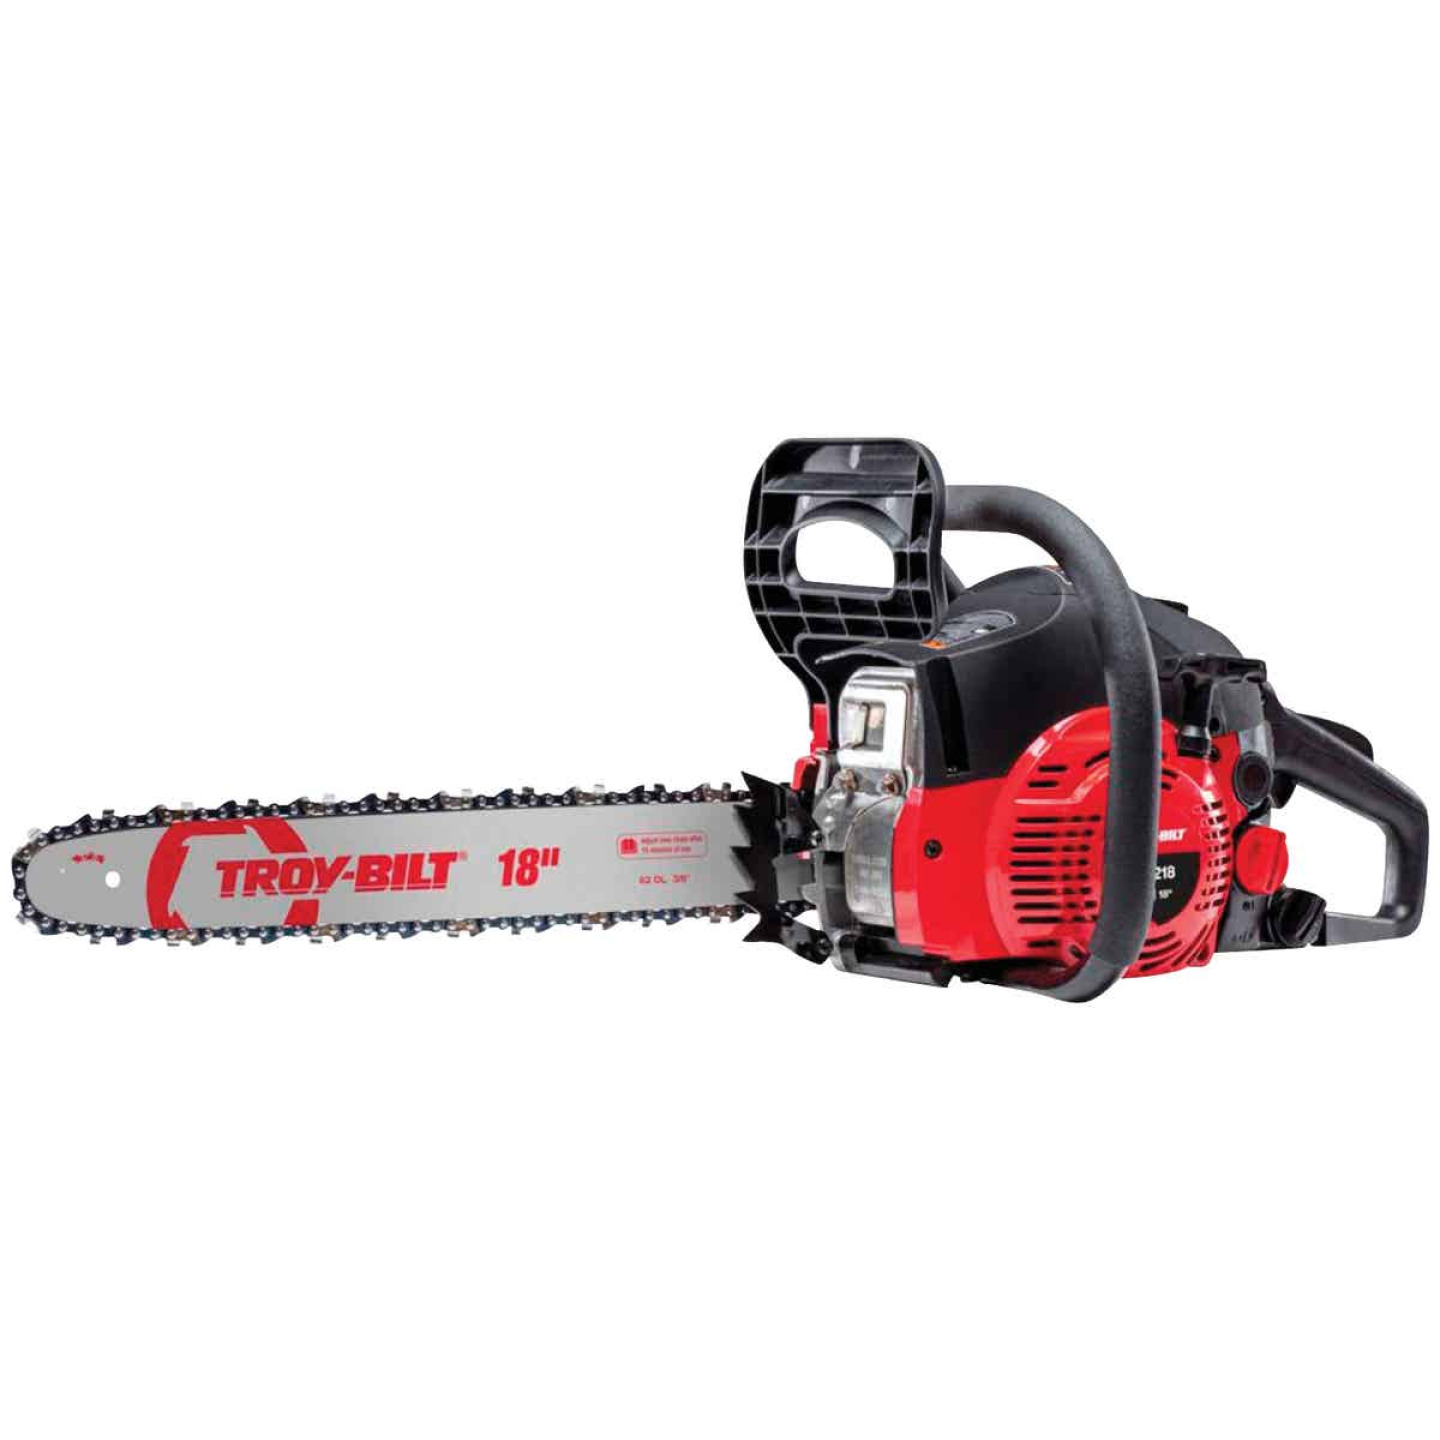 Remington RM4218CS Rebel 42cc 2-Cycle 18 In. Gas Chainsaw Image 1